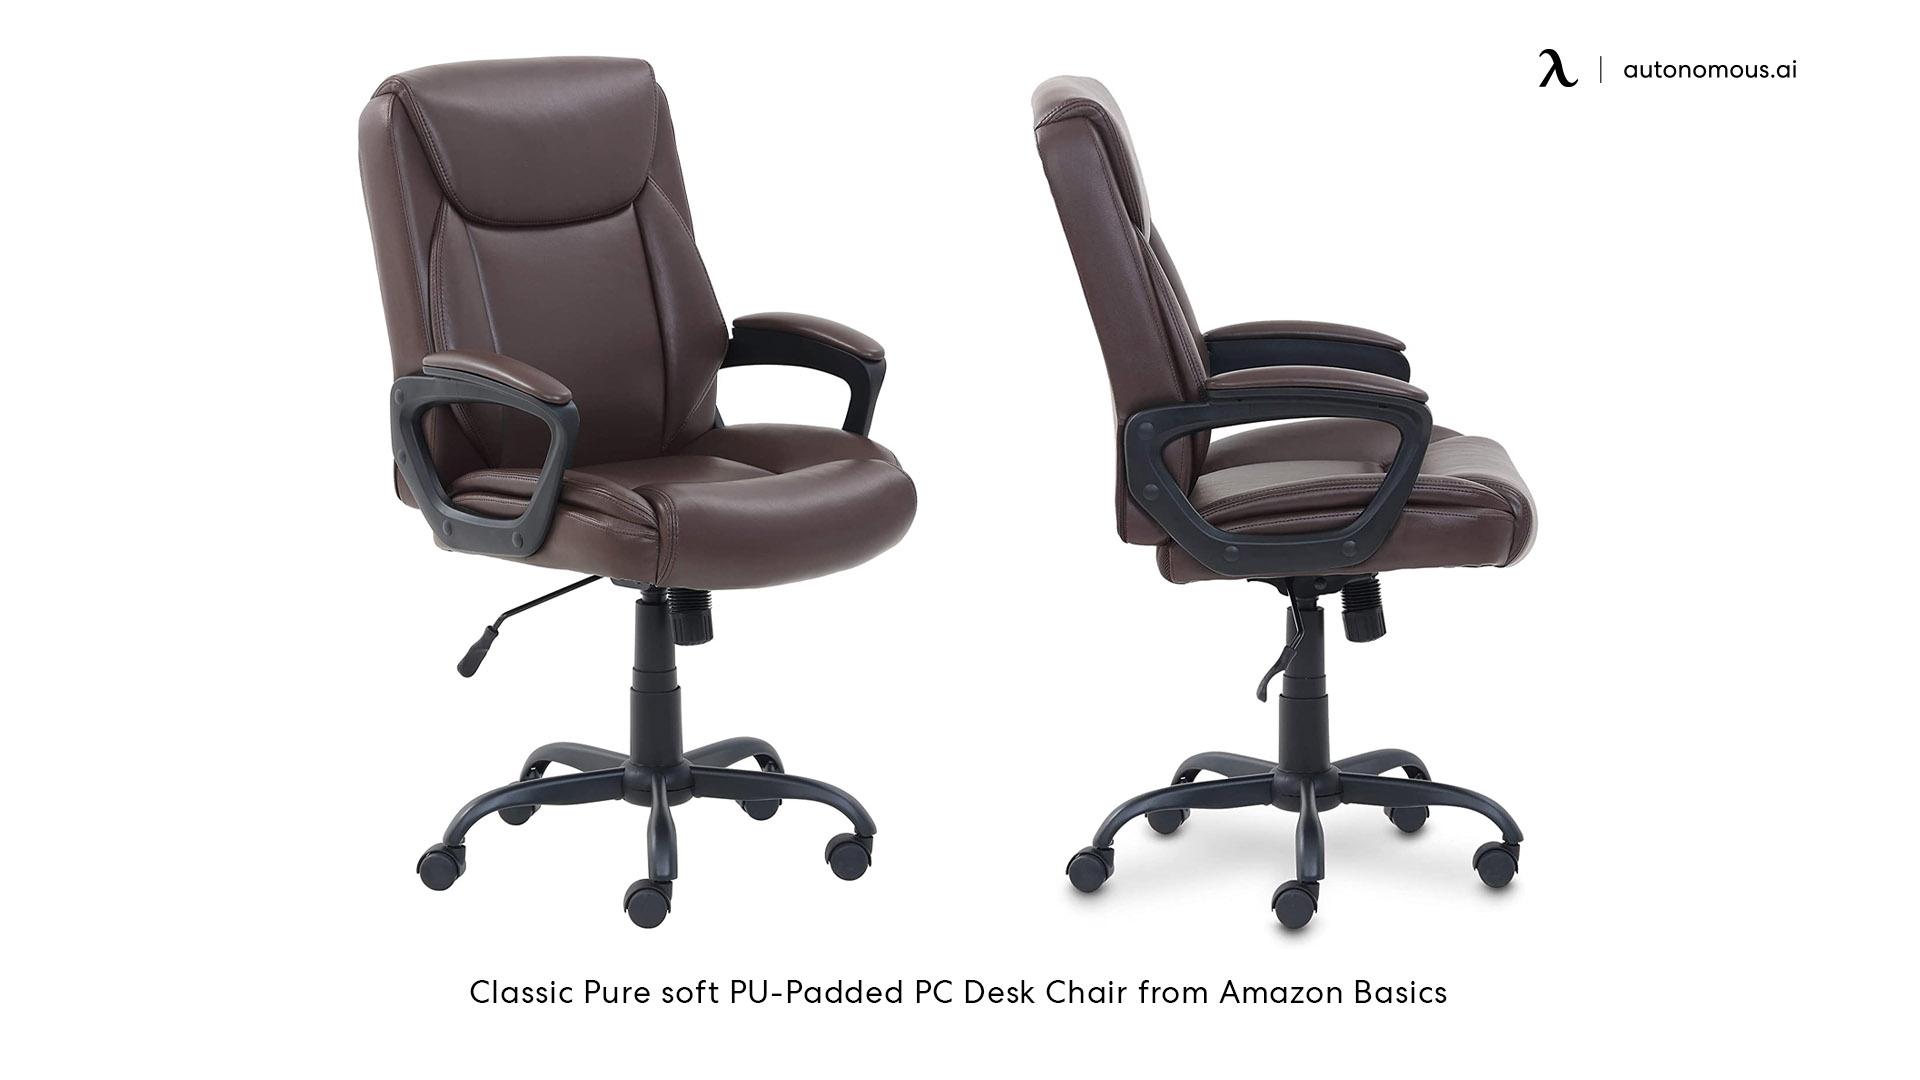 Classic Pure soft PU-Padded PC Desk Chair from Amazon Basics